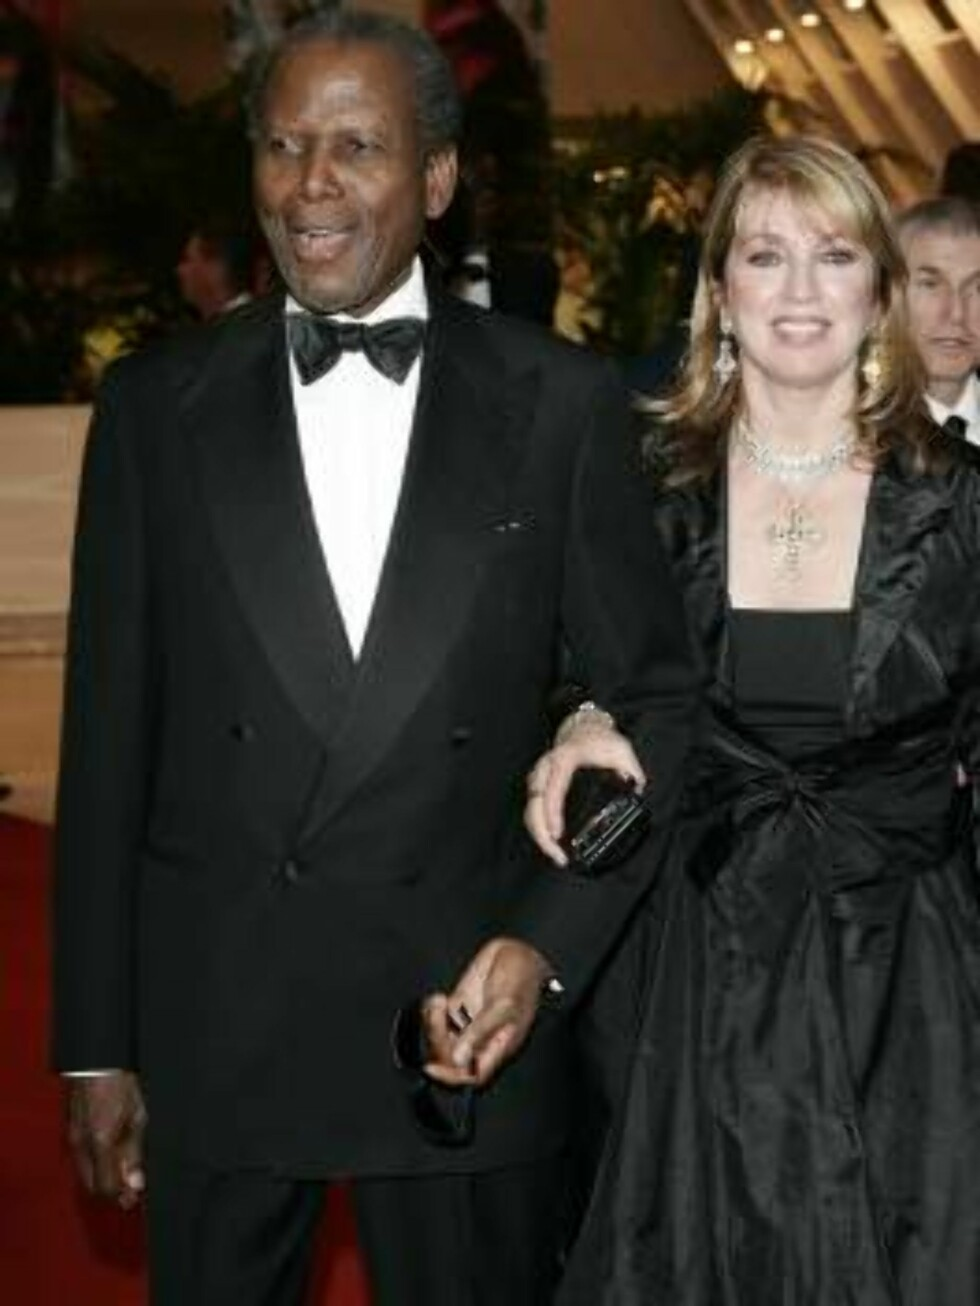 CANNES, FRANCE - MAY 17:  (L-R) Actor Sidney Poitier and wife actress Joanna Shimkus attend the Opening Ceremony dinner at the Palais during the 59th International Cannes Film Festival May 17, 2006 in Cannes, France.  (Photo by Francois Durand/Getty Image Foto: All Over Press